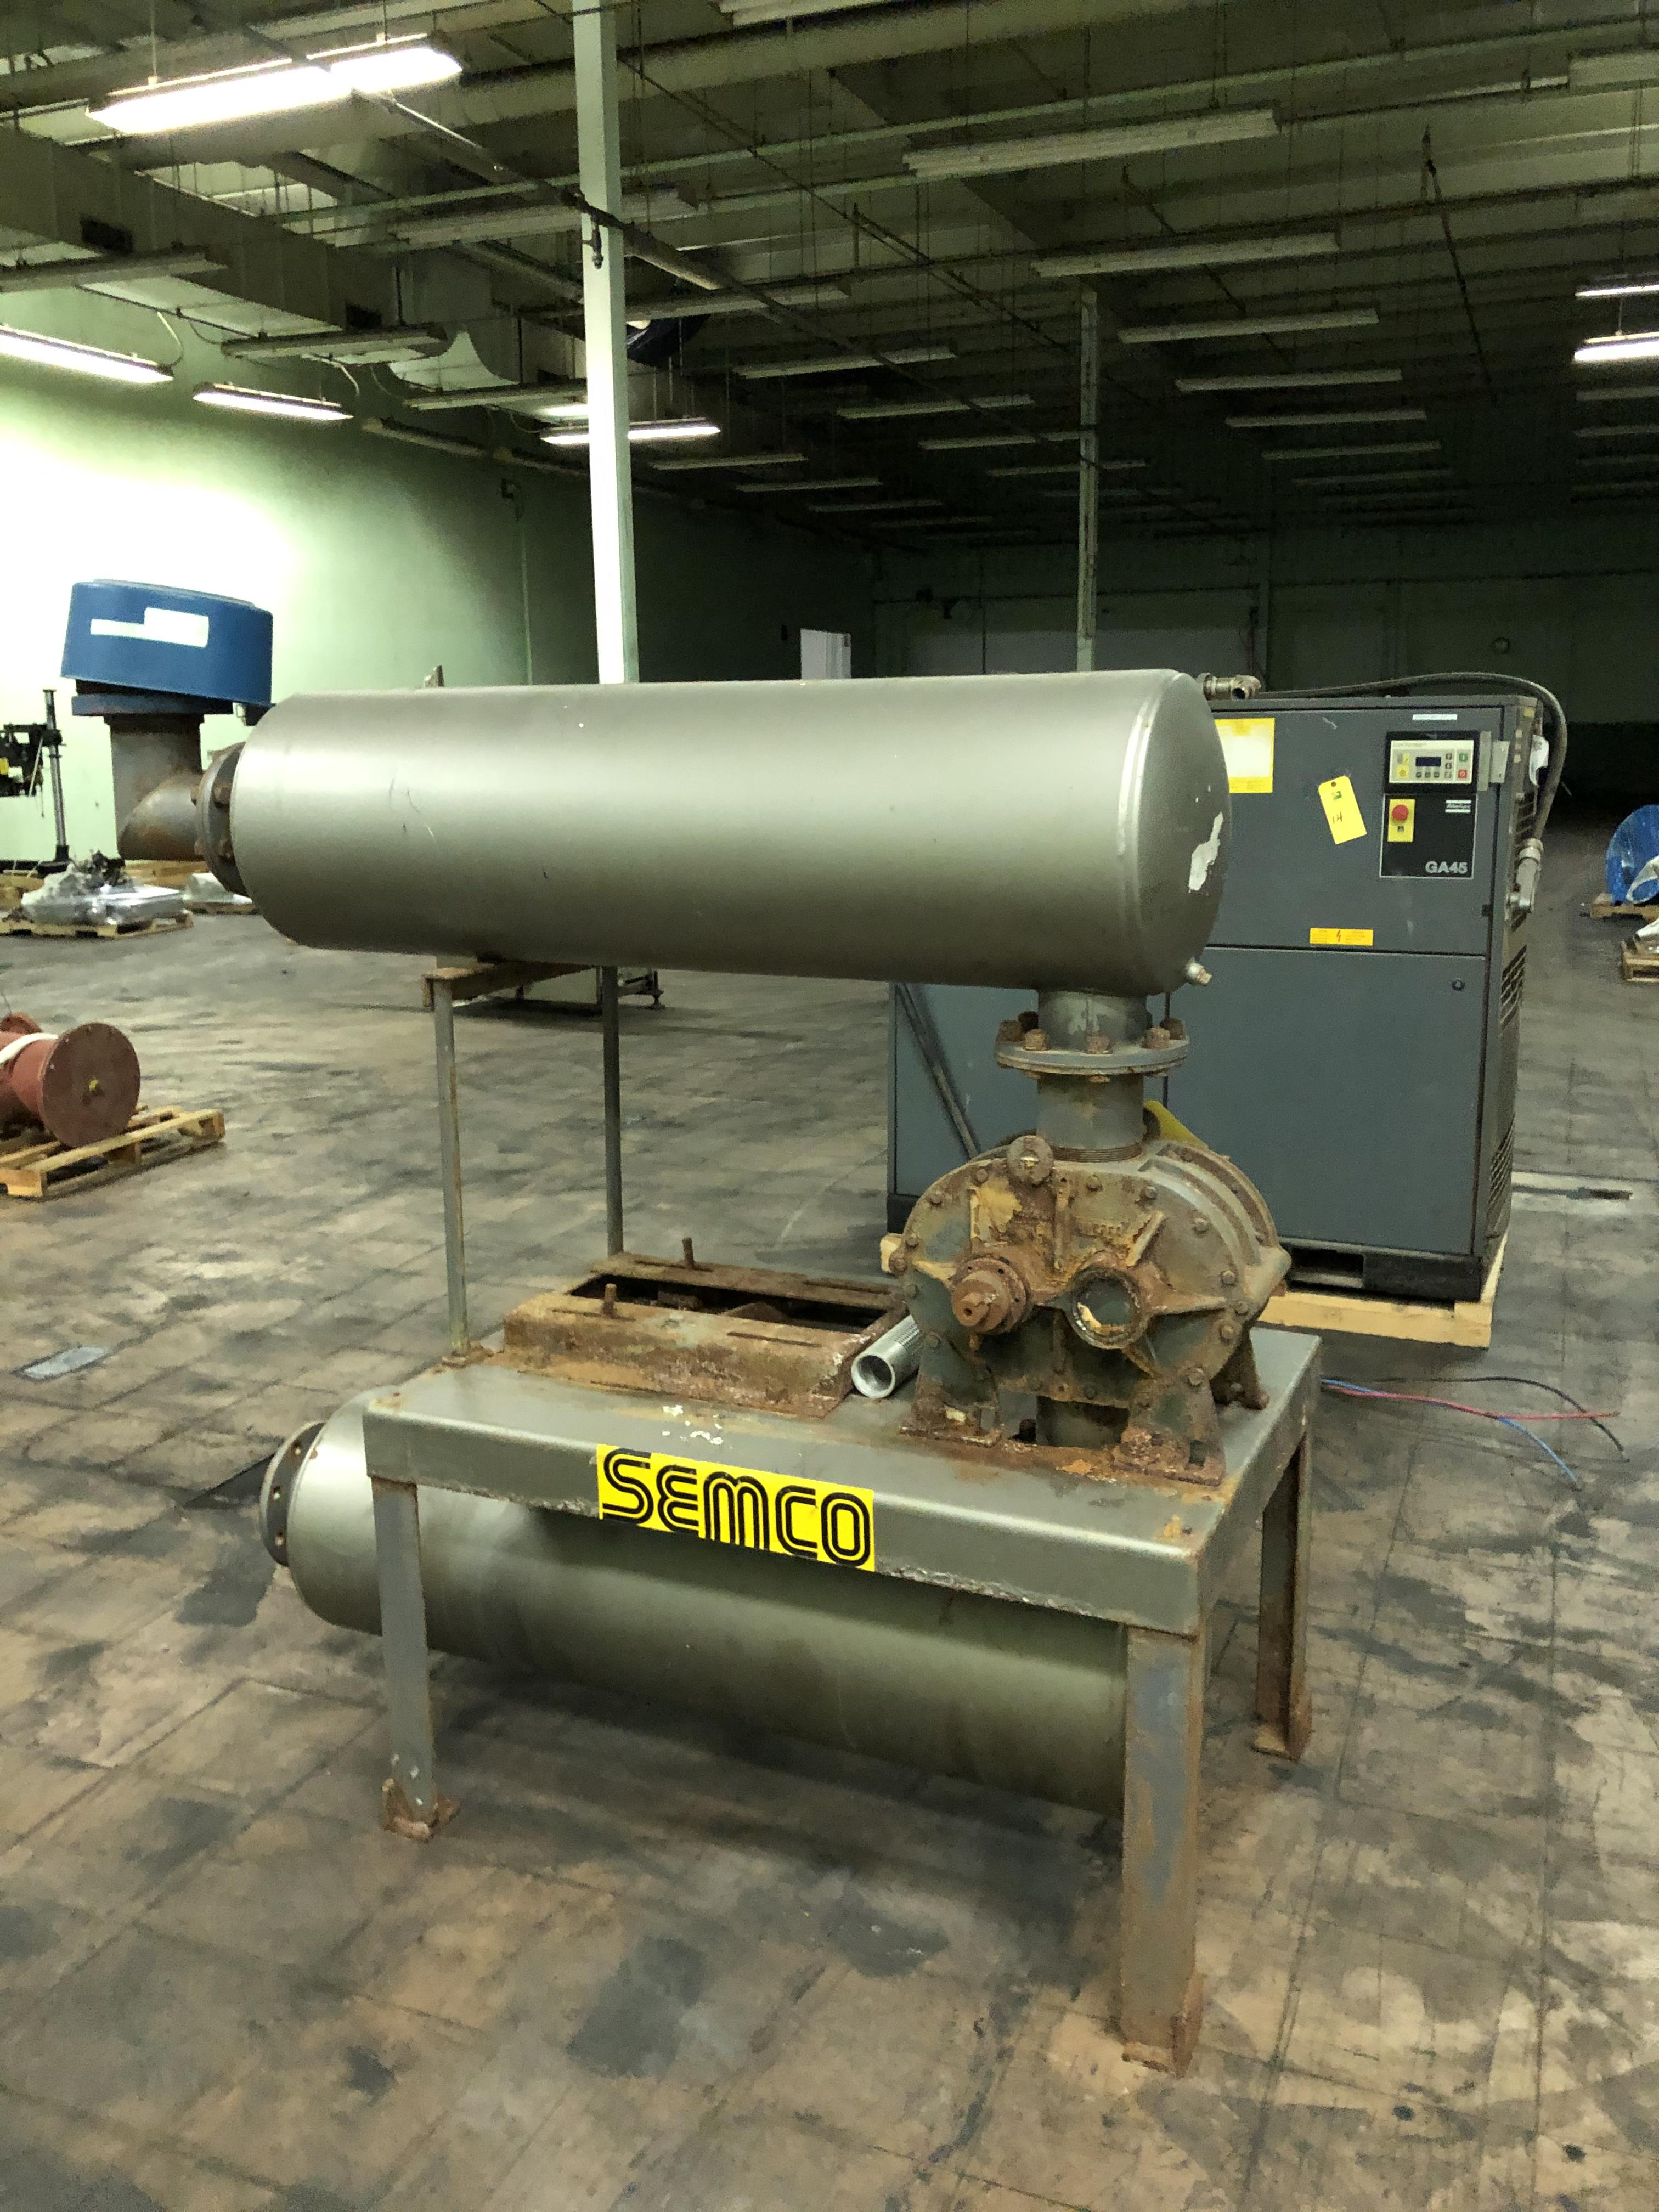 Tuthill Corp. Model #6008-21L2 Vacuum Pump, Tanks, Stand, Note - No Motor, RIGGING FEE - $150 - Image 2 of 2